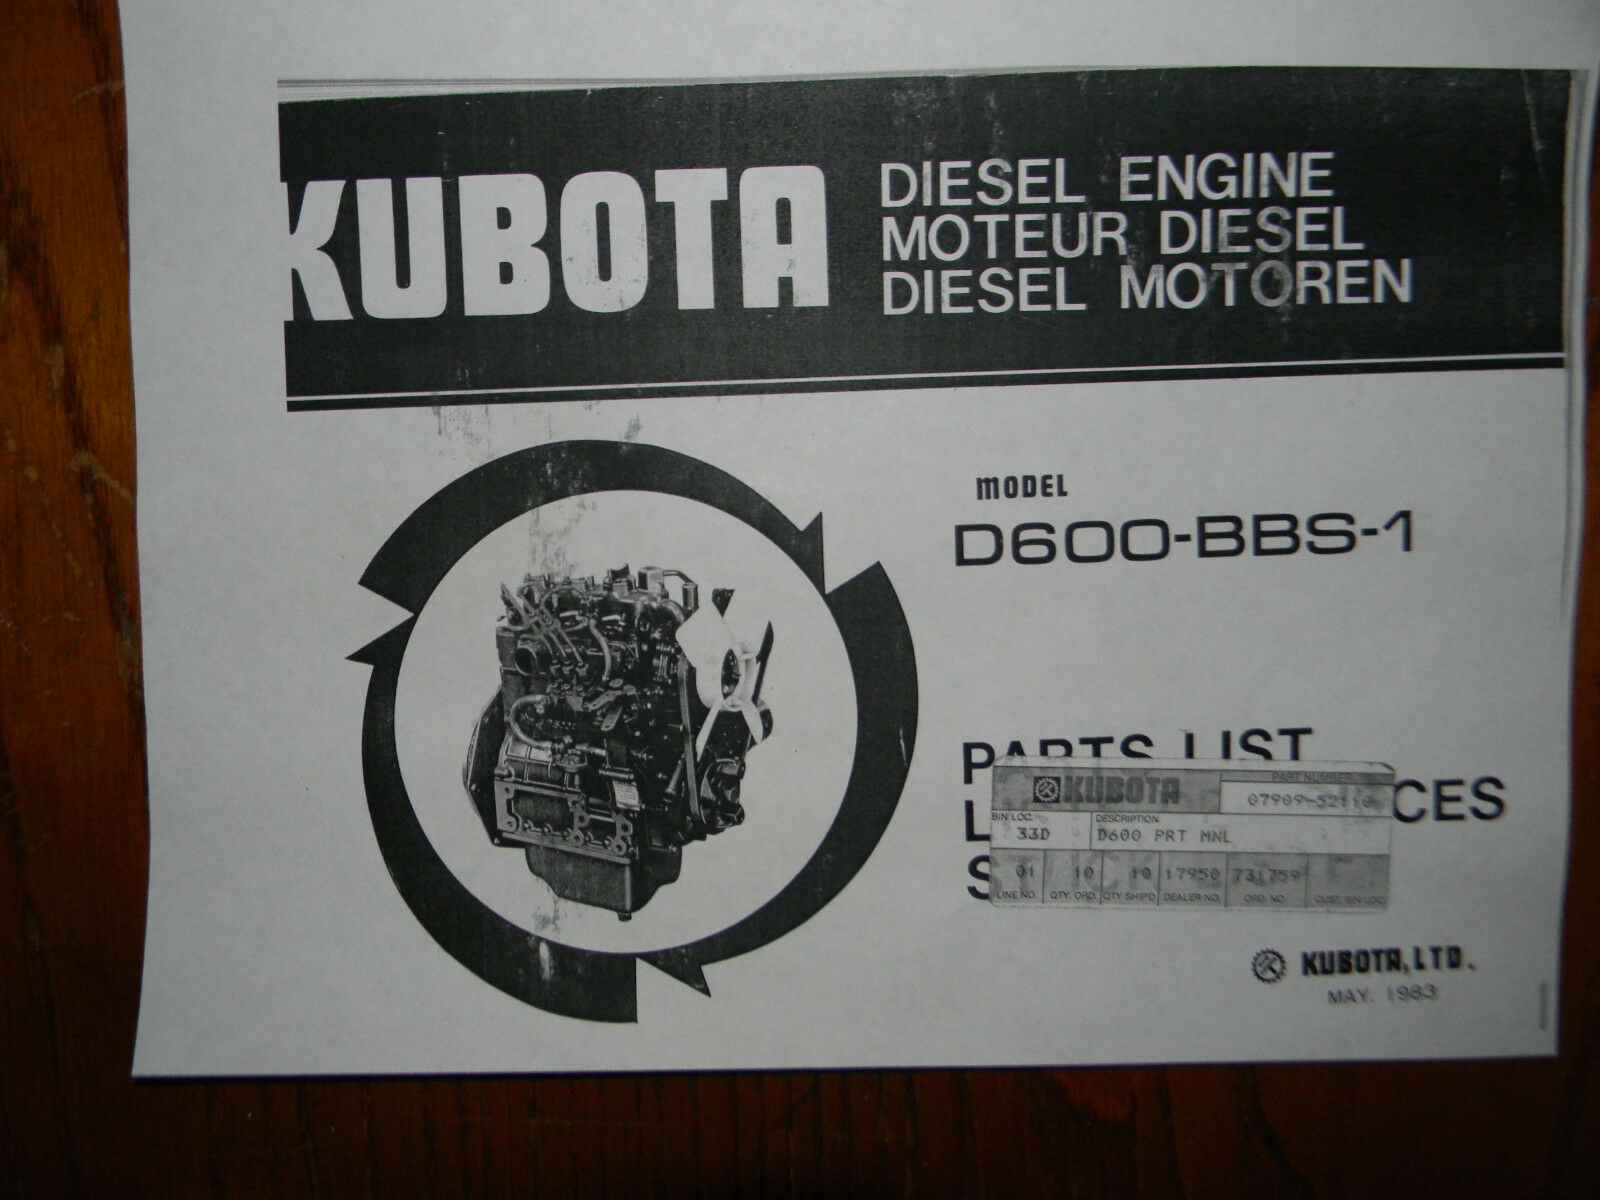 Kubota D600 diesel engine parts book 1 of 1Only 1 available ...